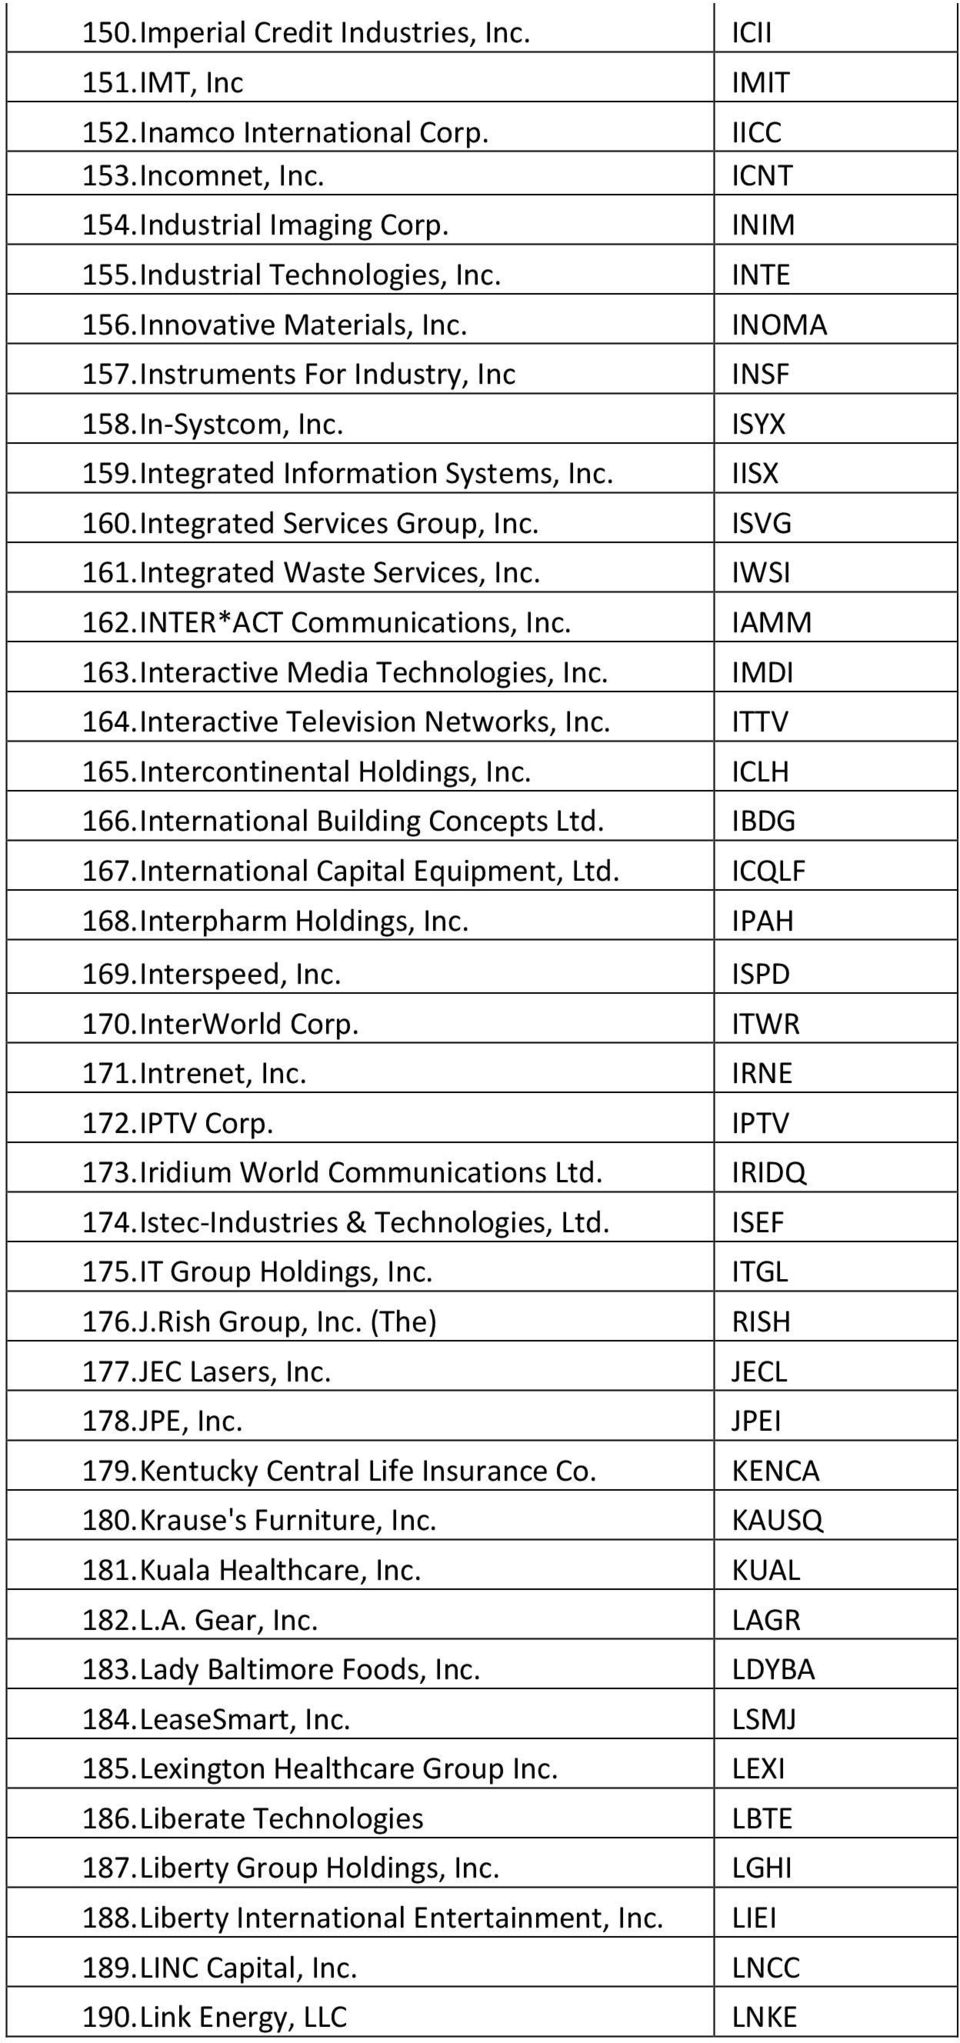 ISVG 161. Integrated Waste Services, Inc. IWSI 162. INTER*ACT Communications, Inc. IAMM 163. Interactive Media Technologies, Inc. IMDI 164. Interactive Television Networks, Inc. ITTV 165.